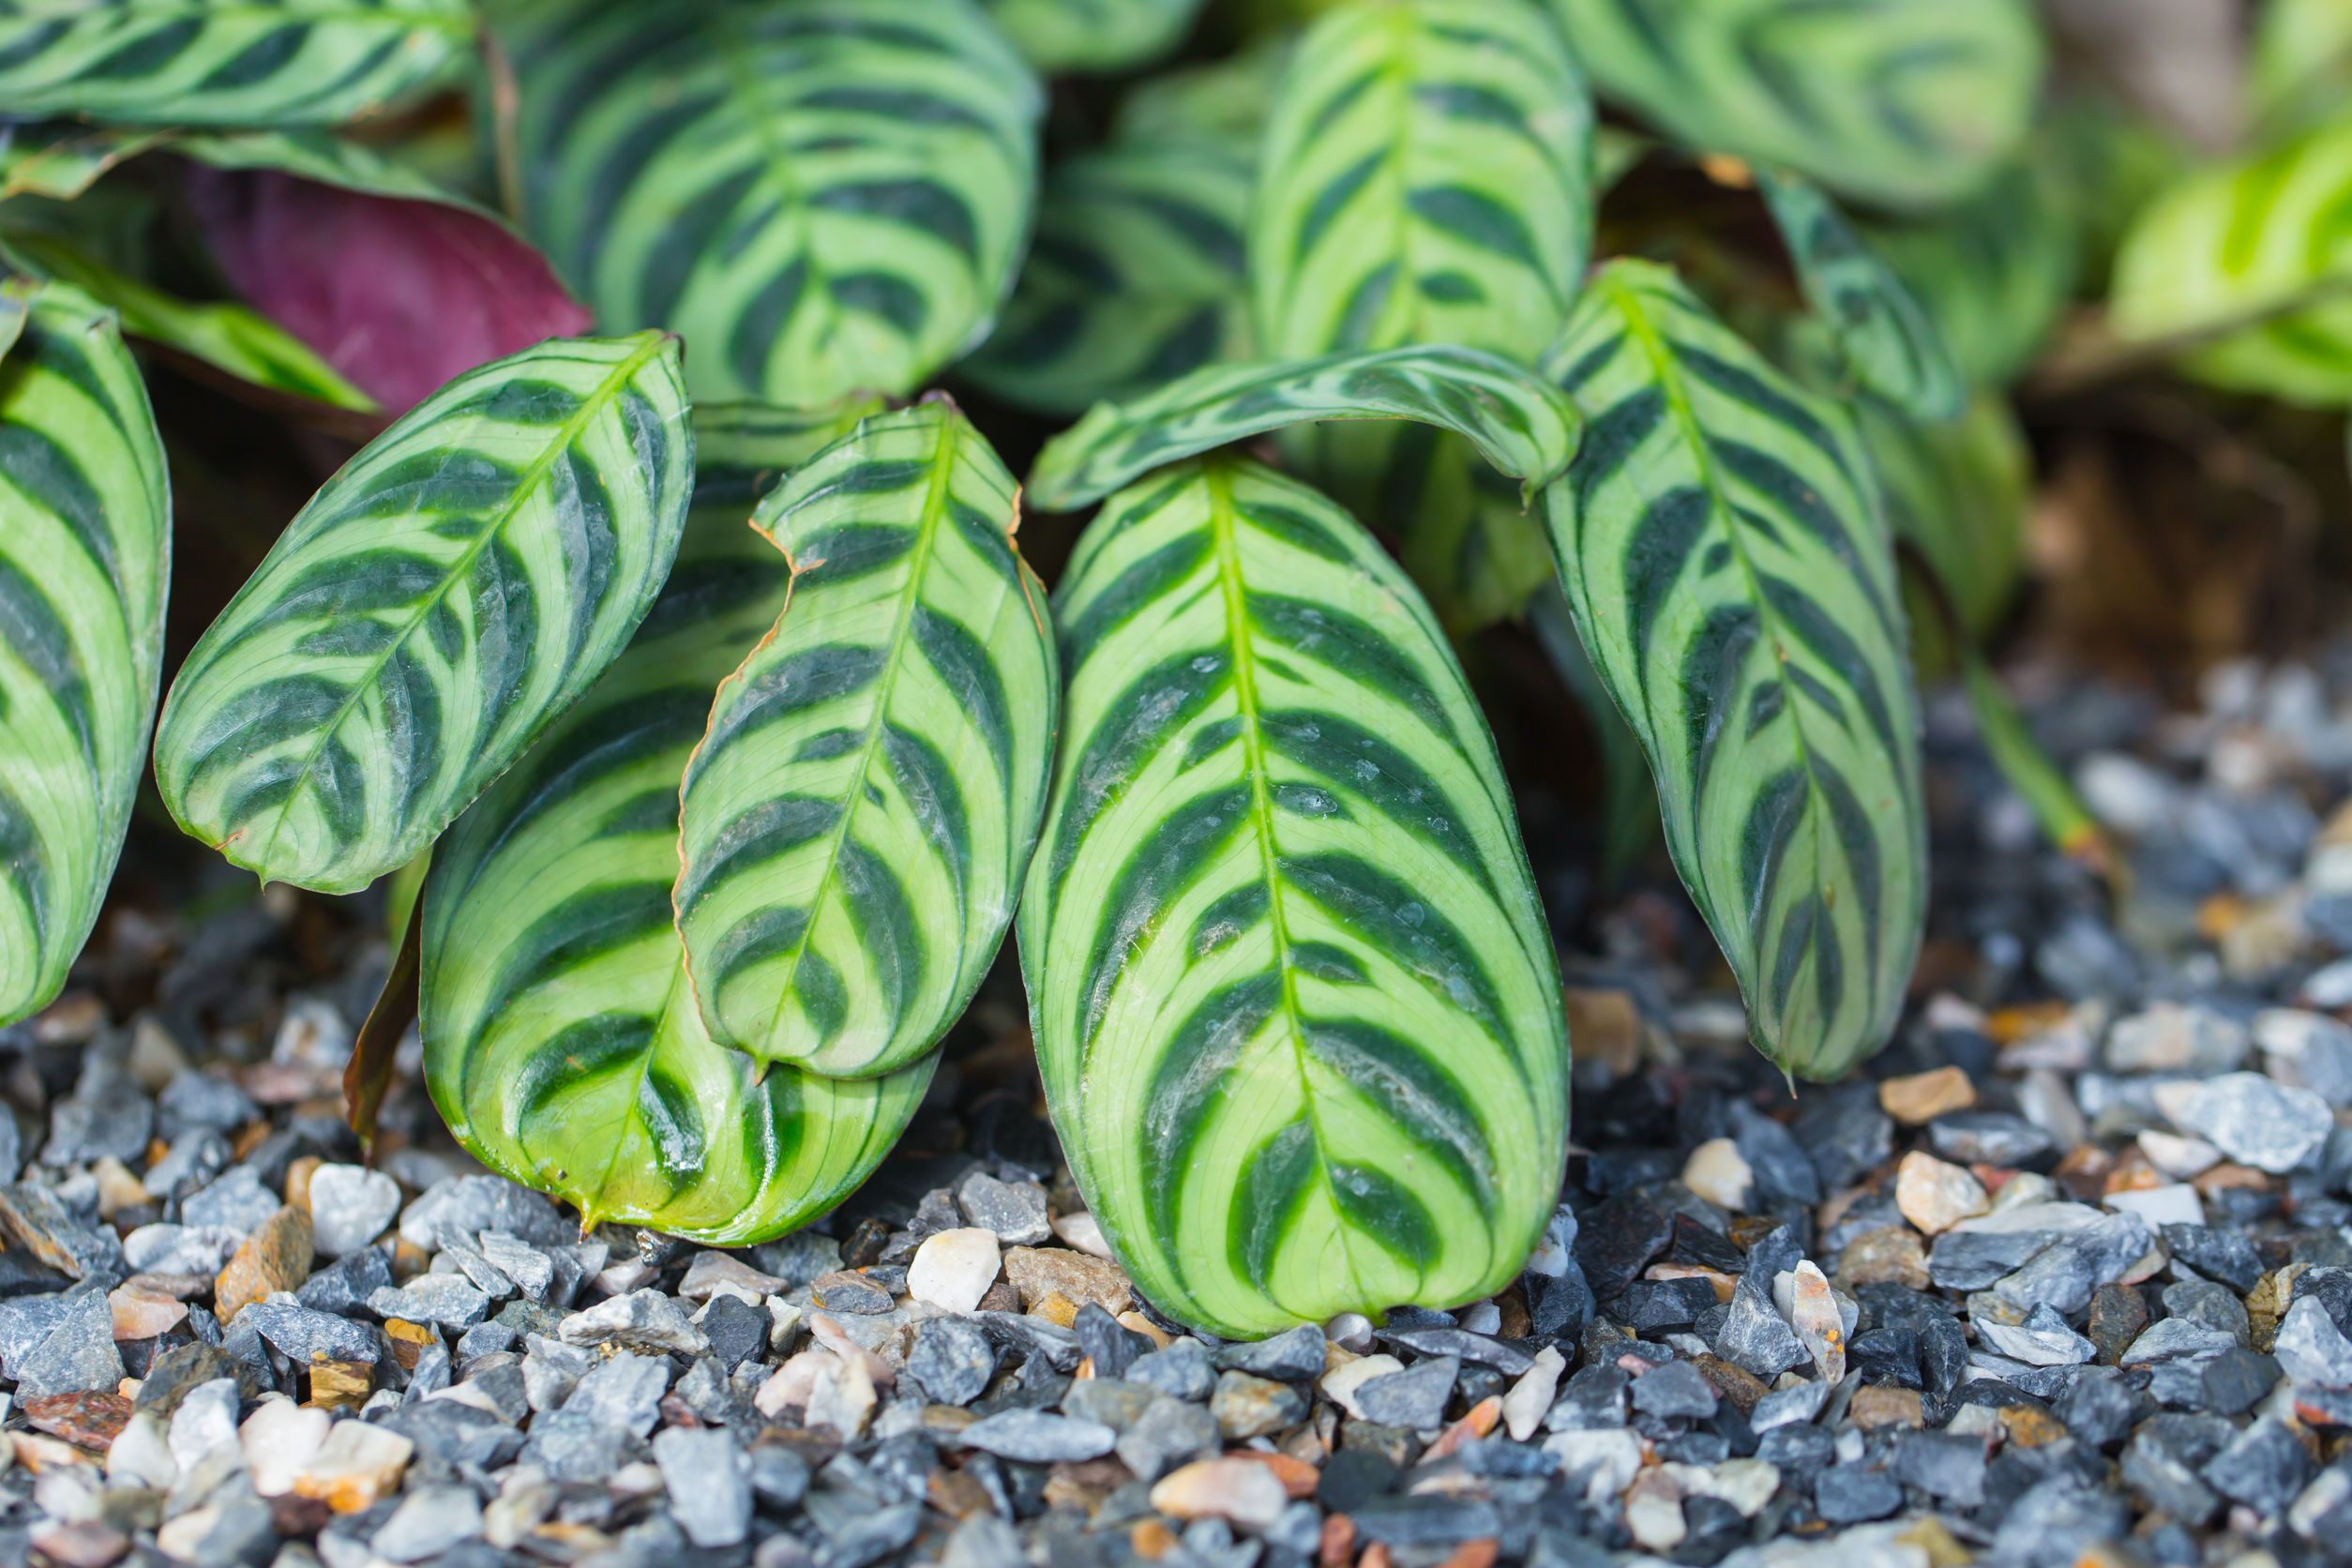 The Calathea plant is non-toxic to cats